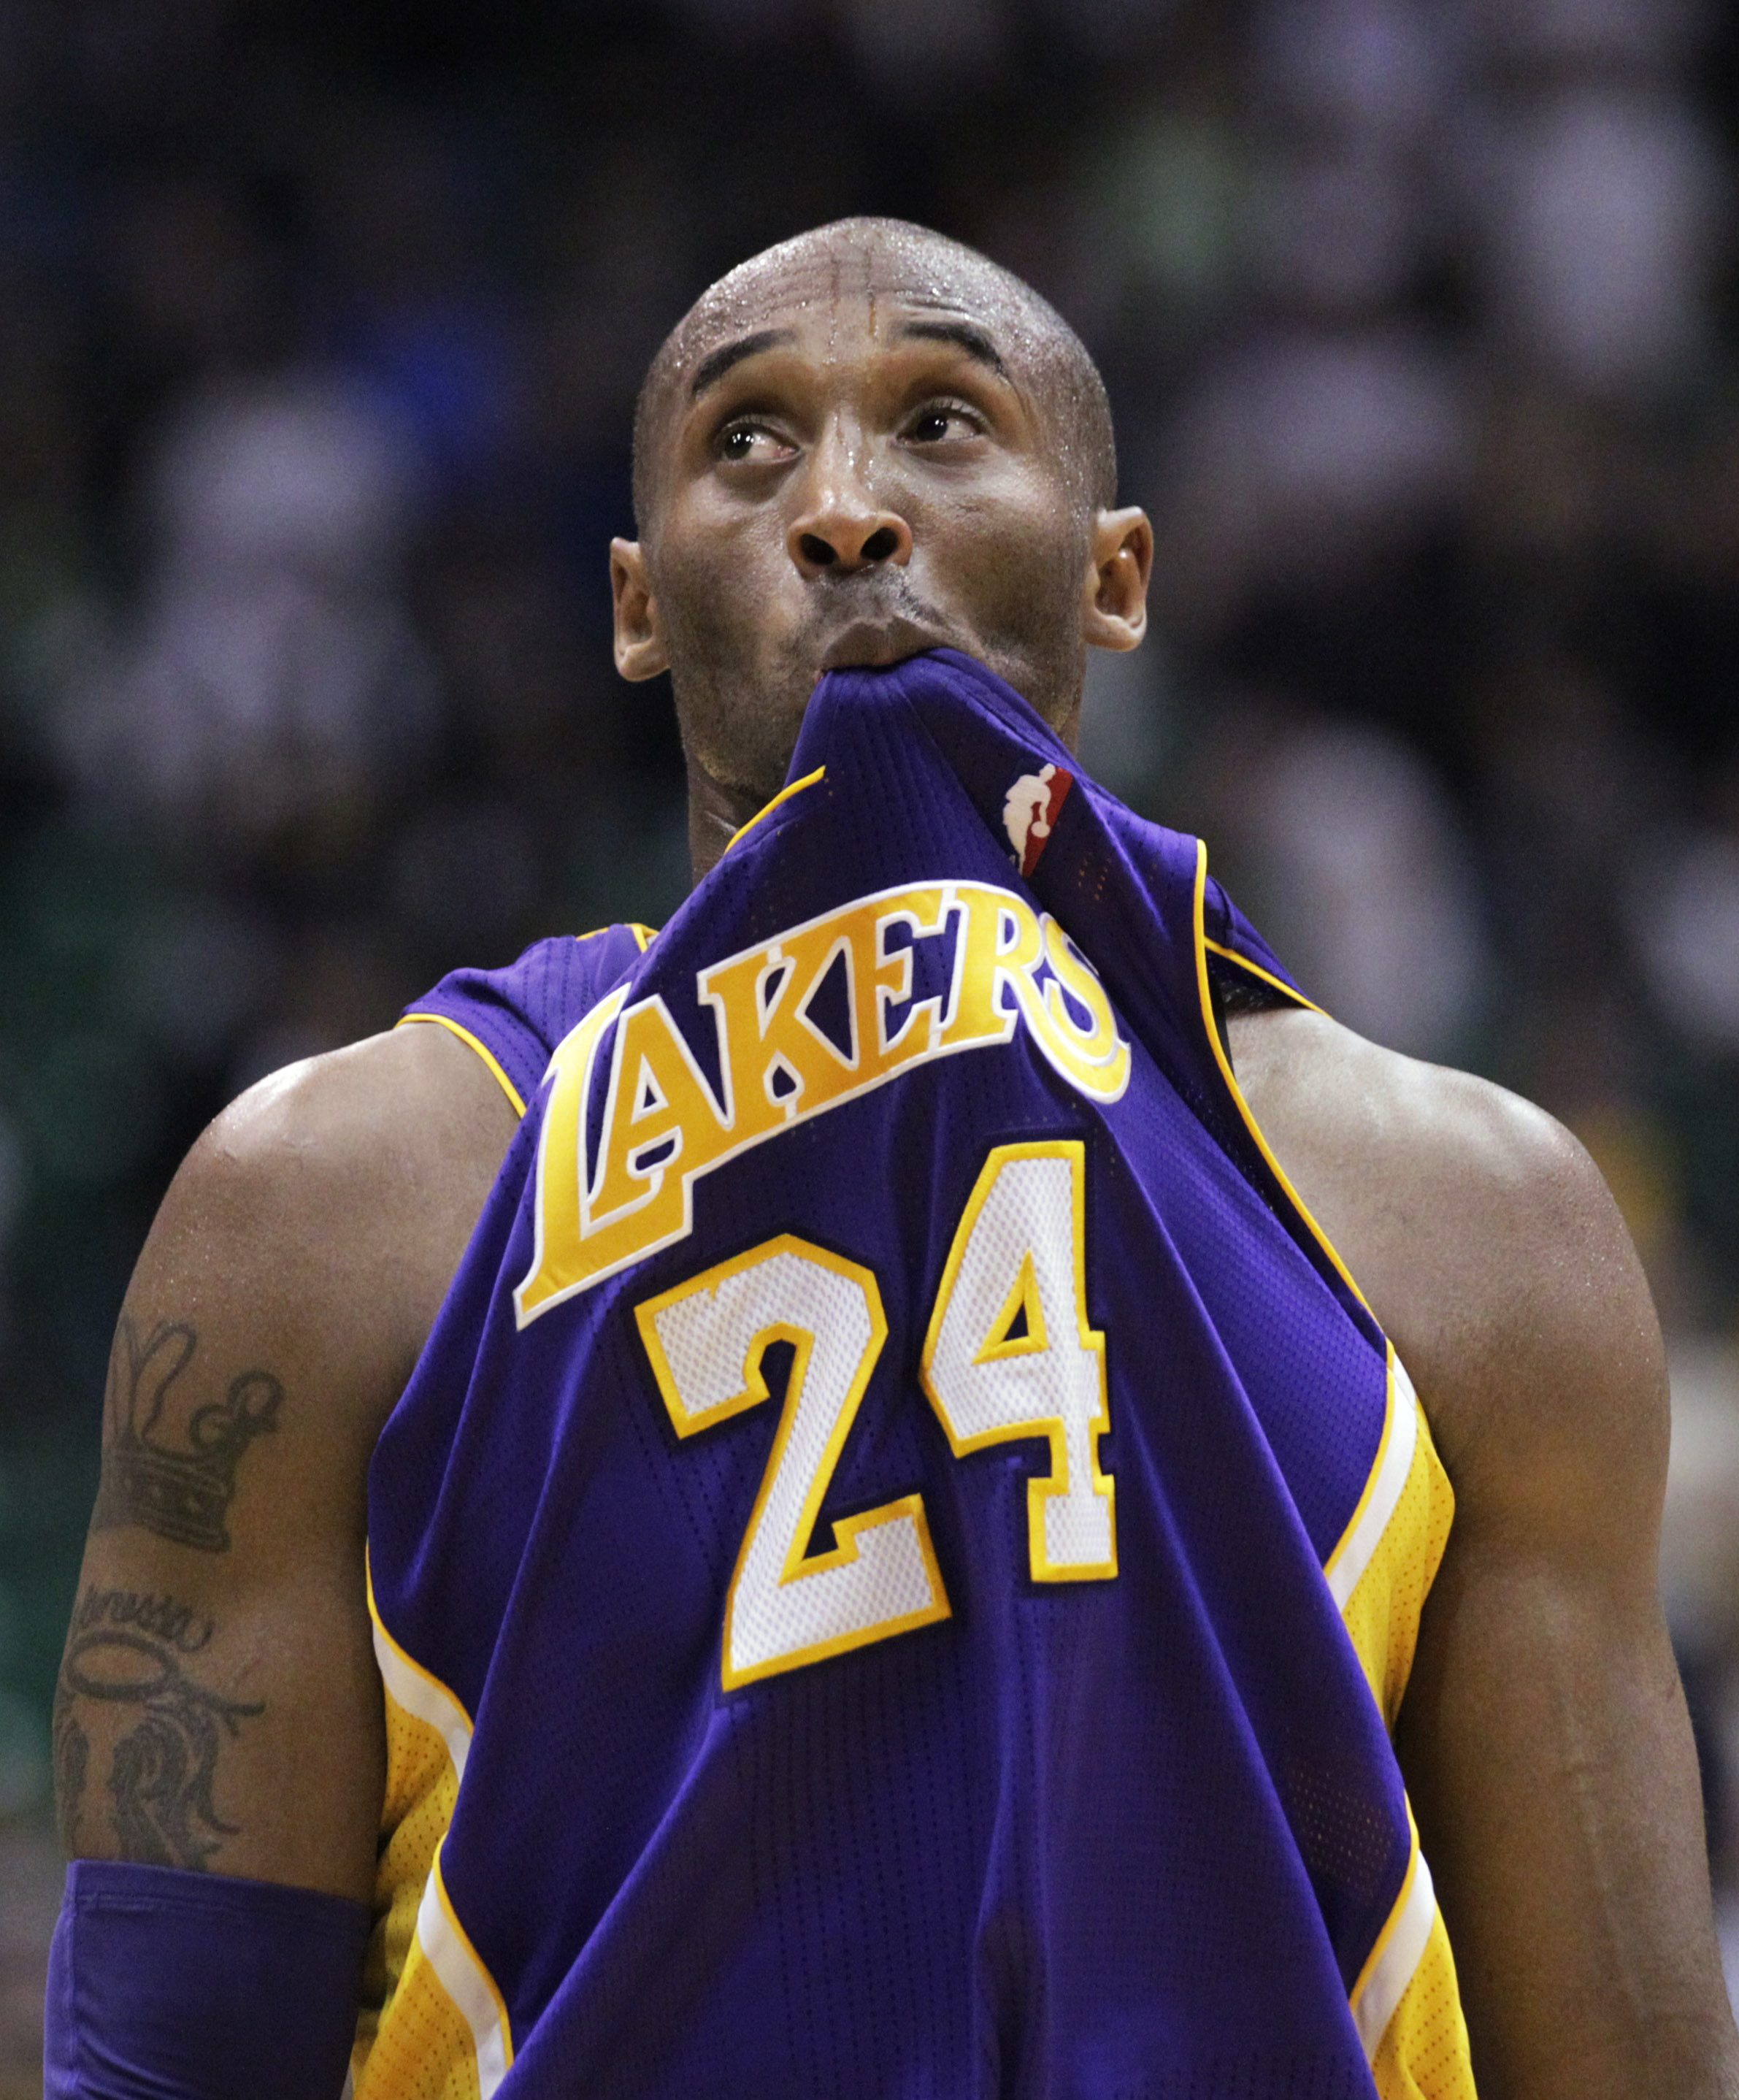 a52cd602541b Los Angeles guard Kobe Bryant has plenty to ponder as his Lakers fell to 1-